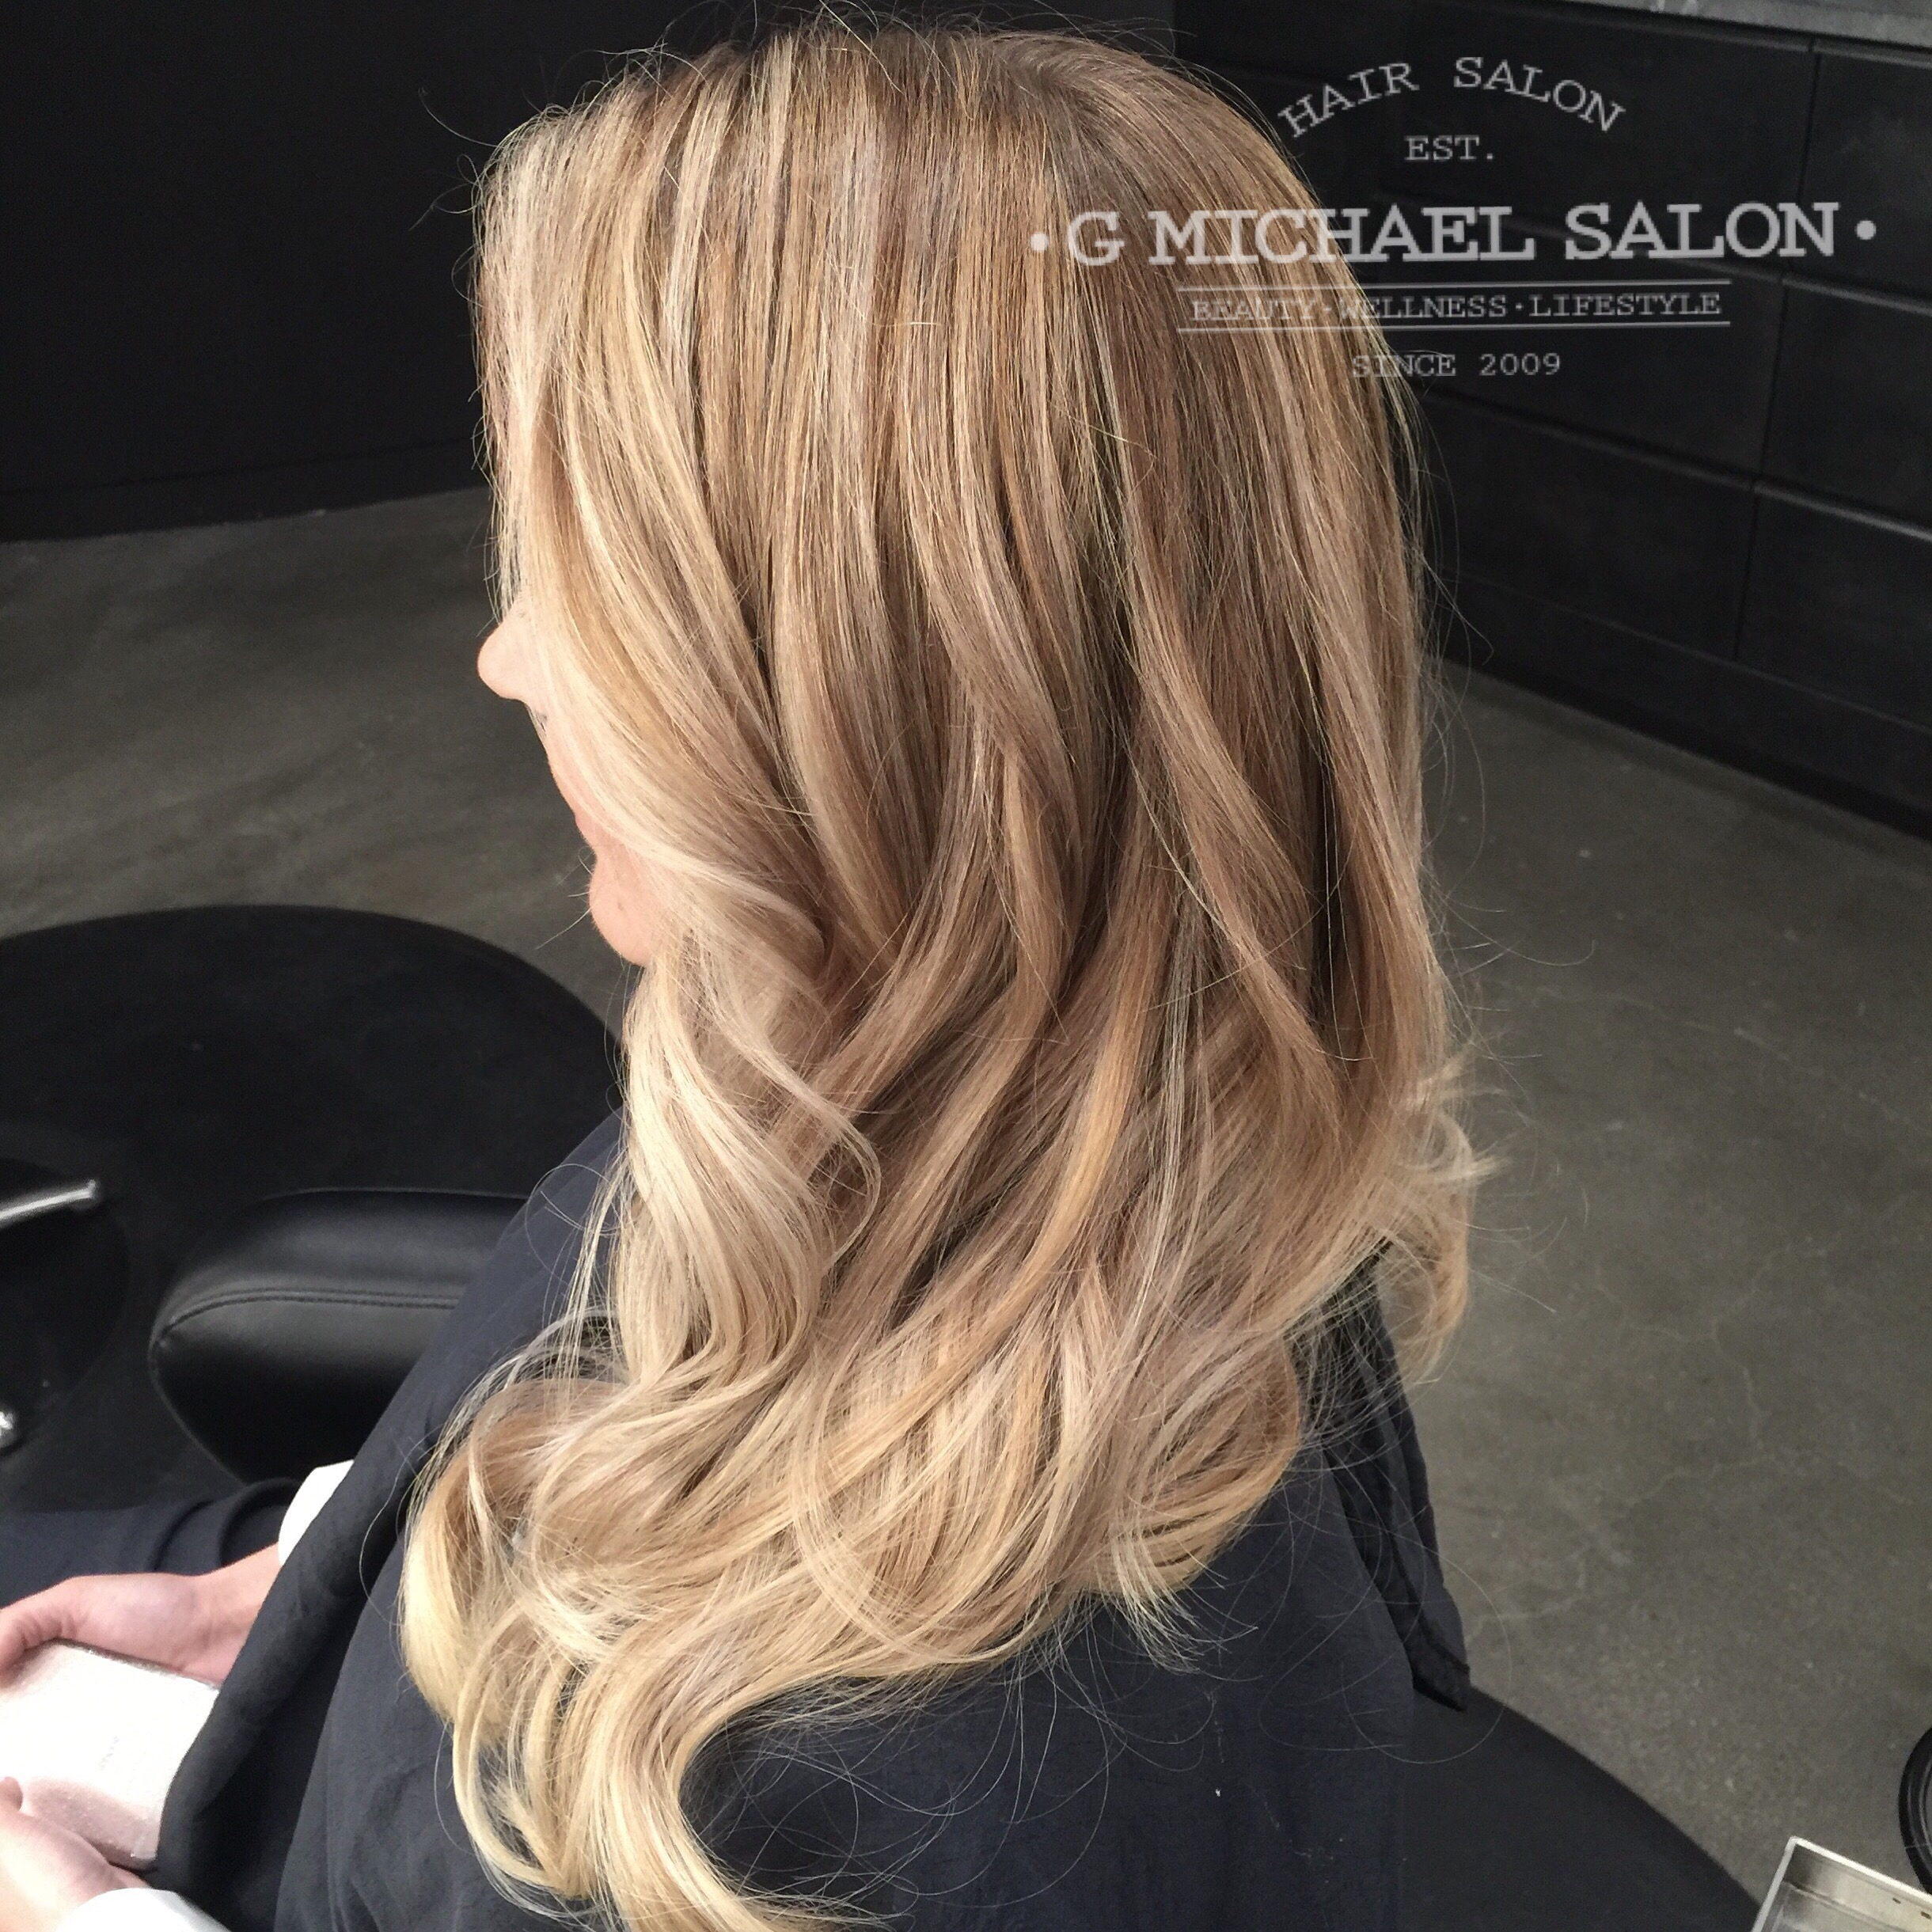 Best Indianapolis Hair Salons For Balayage G Michael Salon G